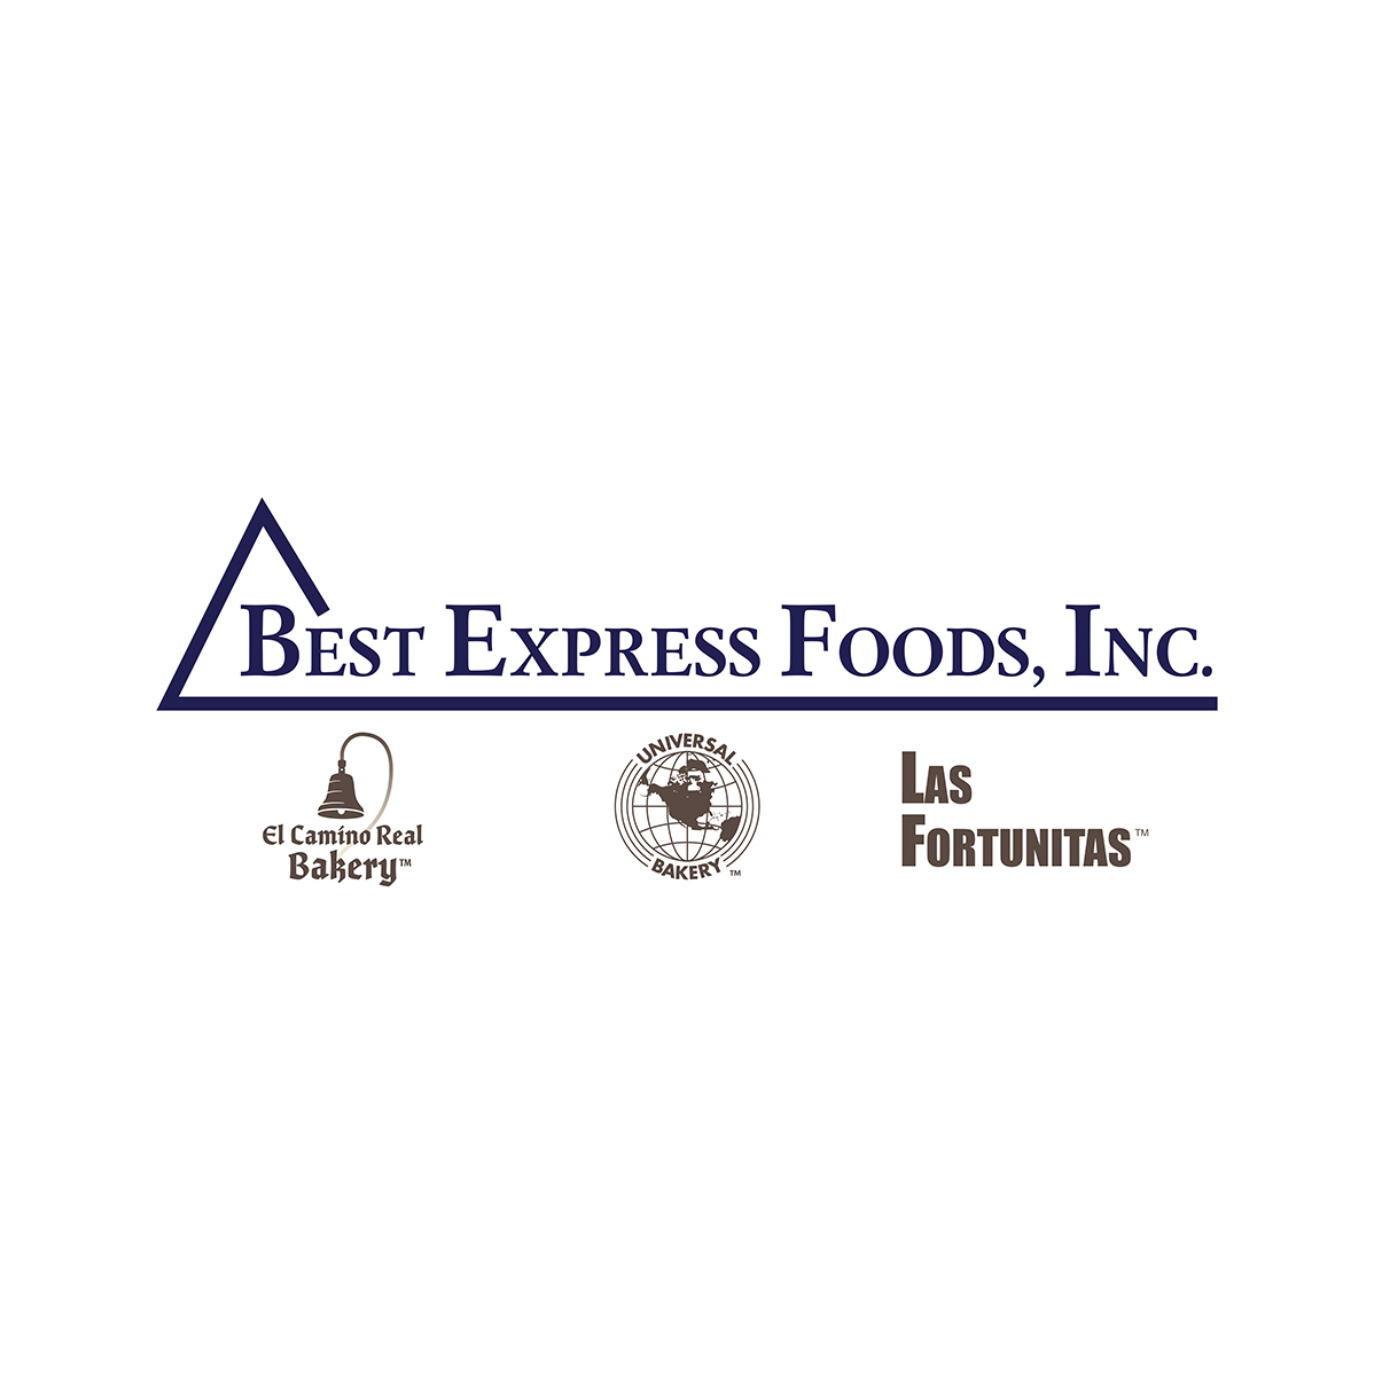 Best Express Foods logo - Certified Paleo by the Paleo Foundation